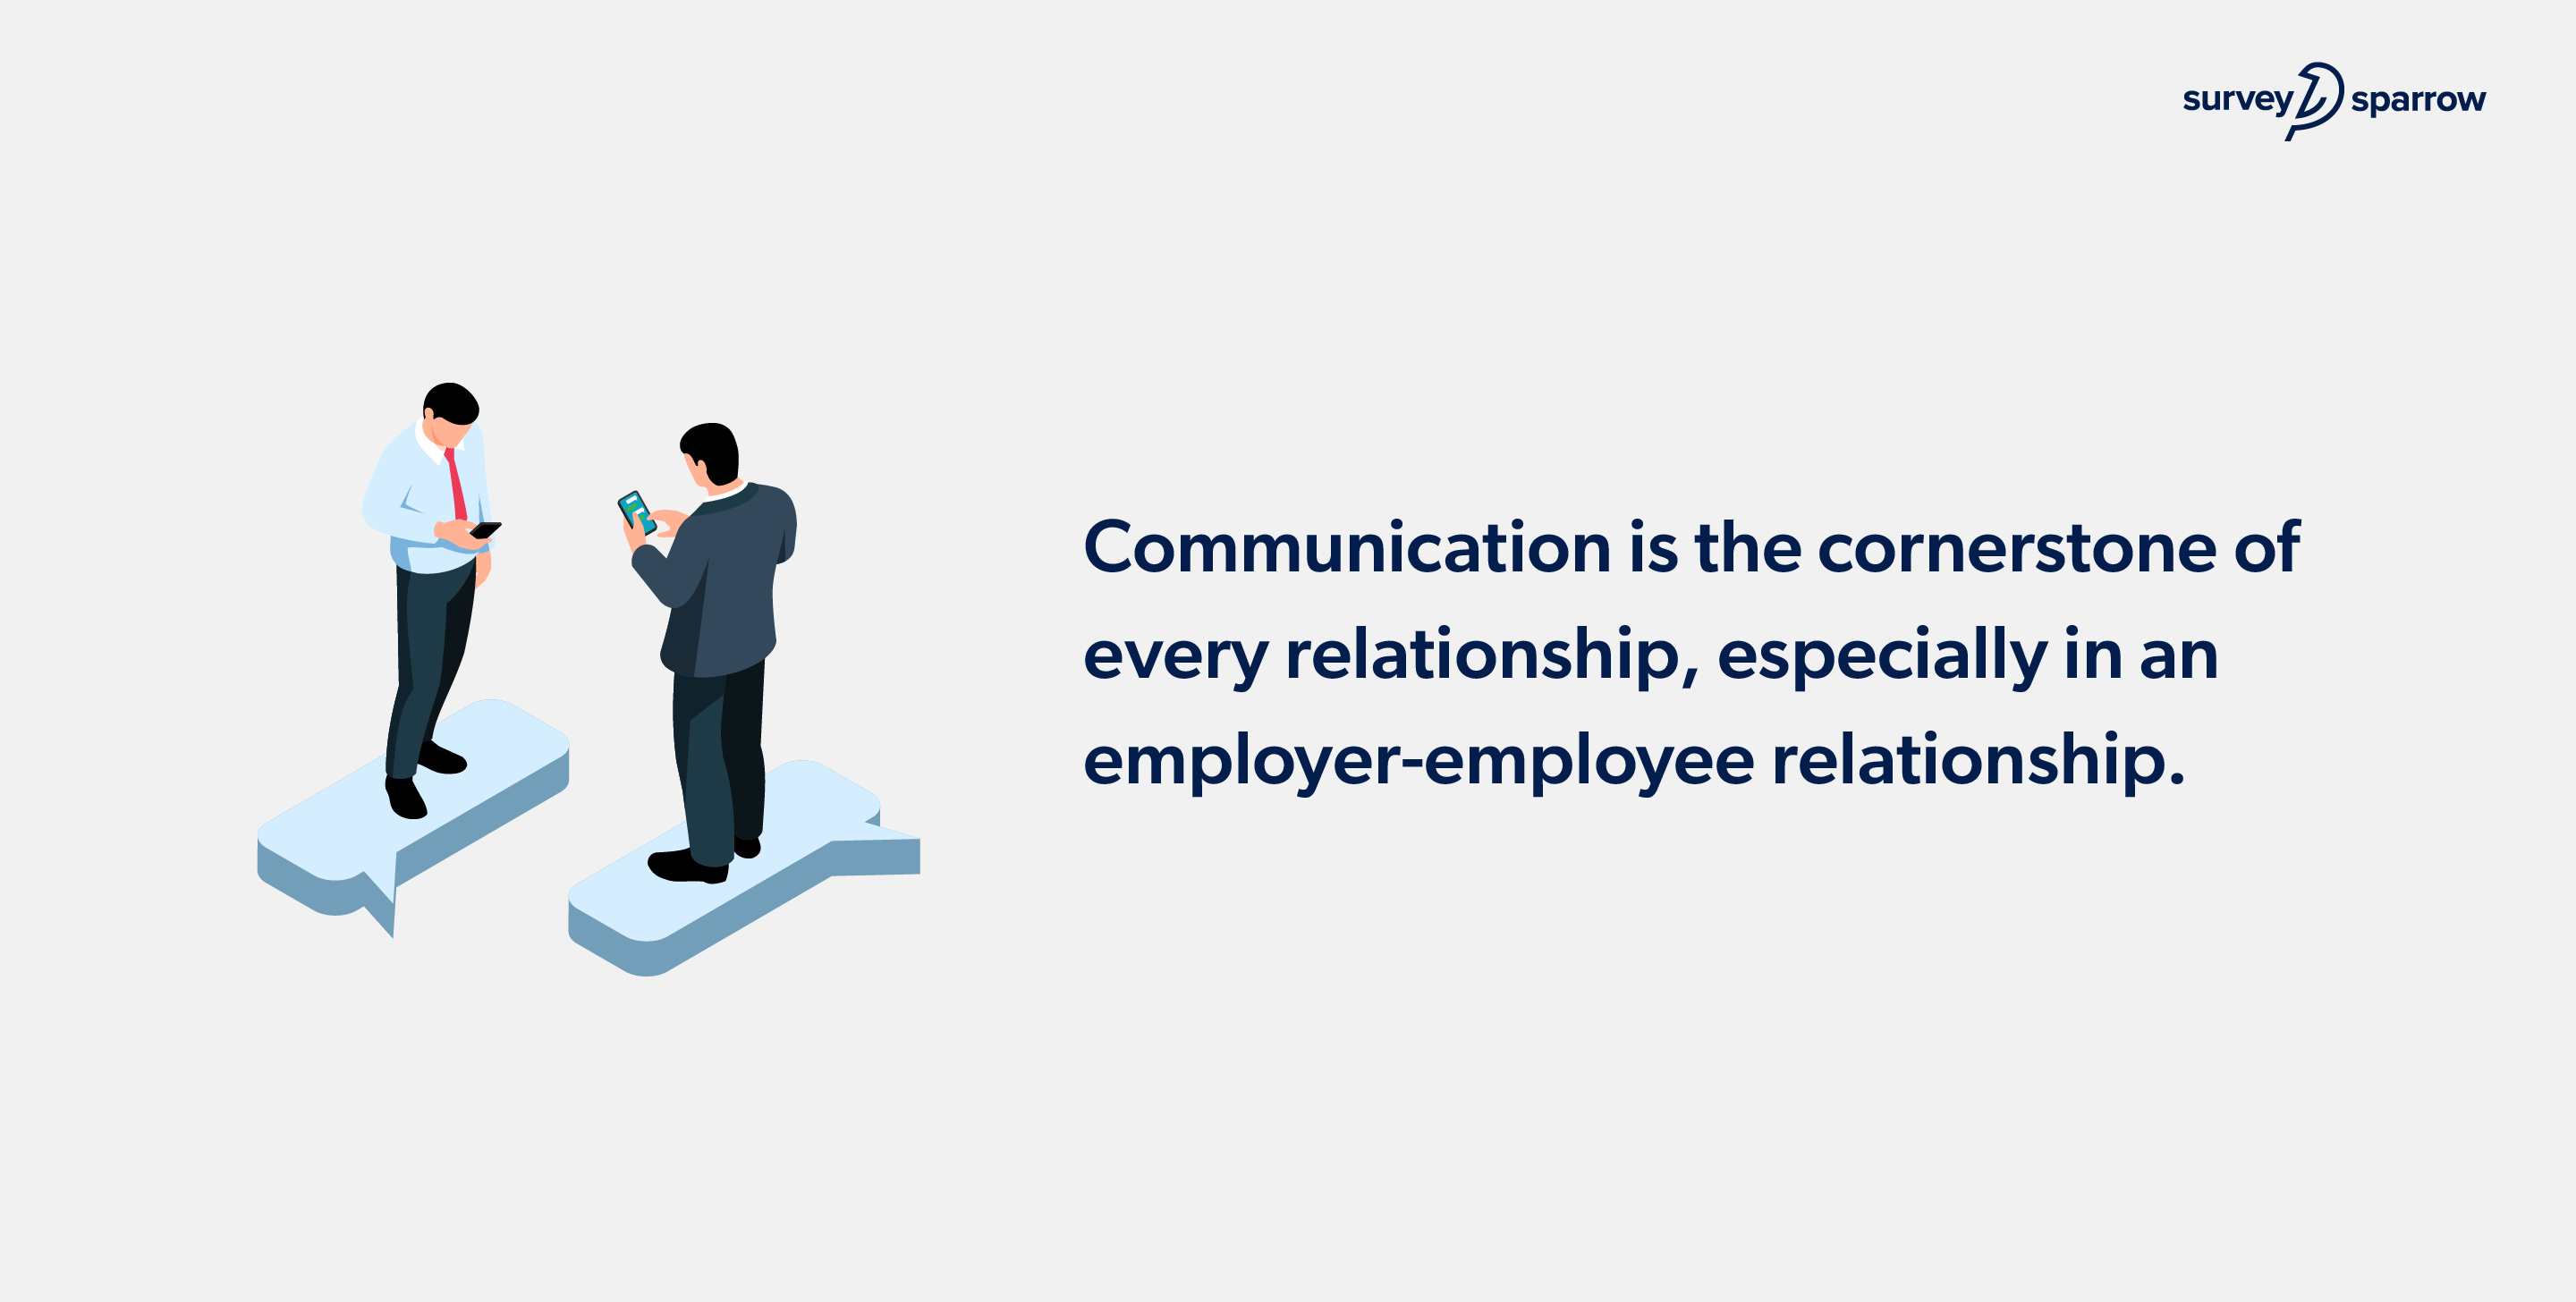 effective communication can improve employee performance.